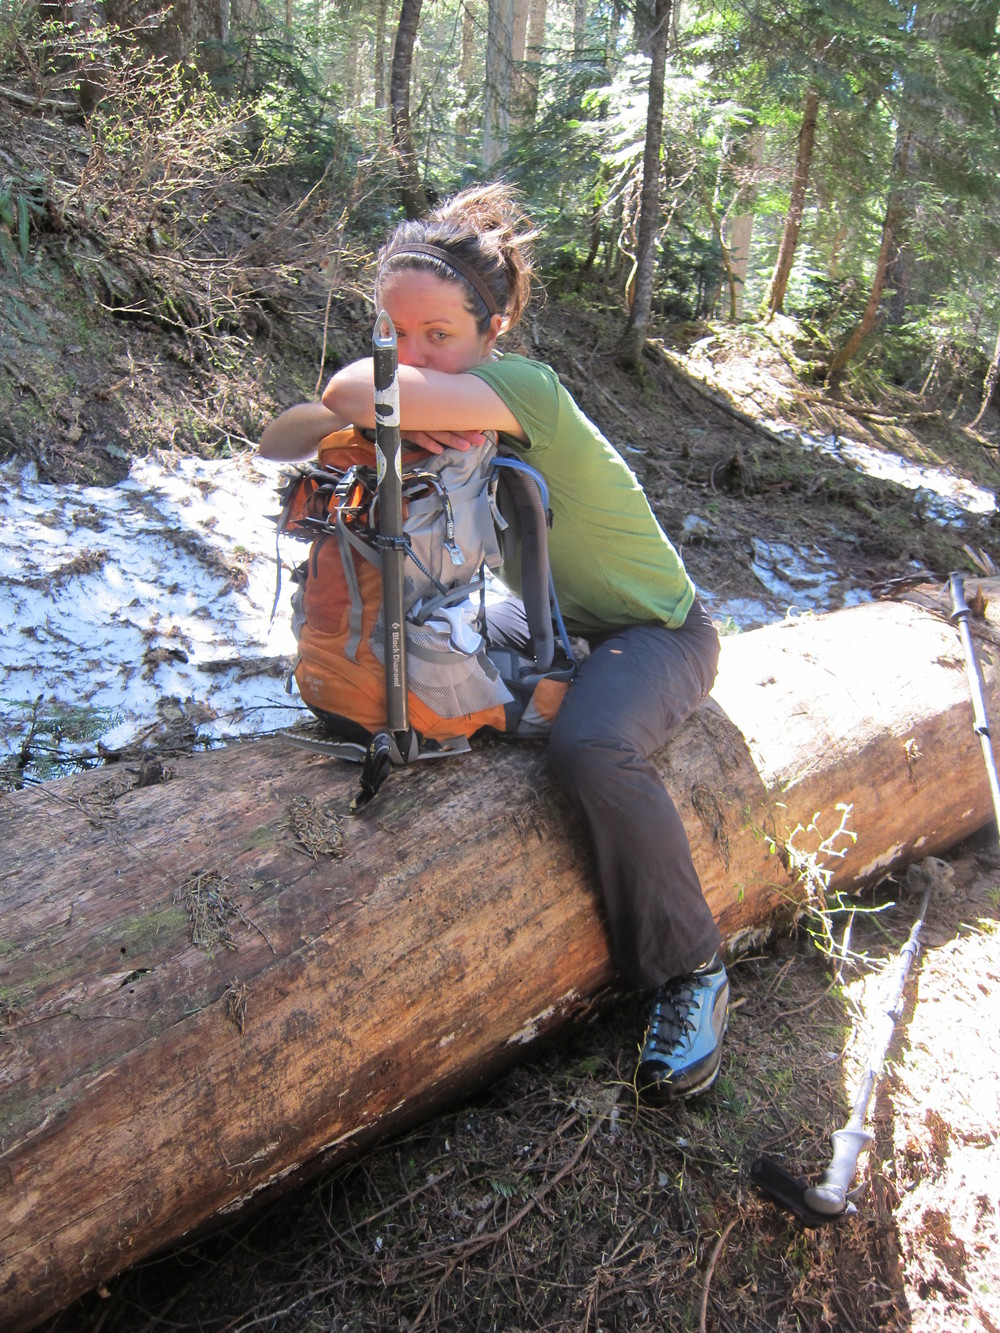 Fighting exhaustion after nearly 18 miles and 9800' gain on Snowking Mountain in the North Cascades, Washington.